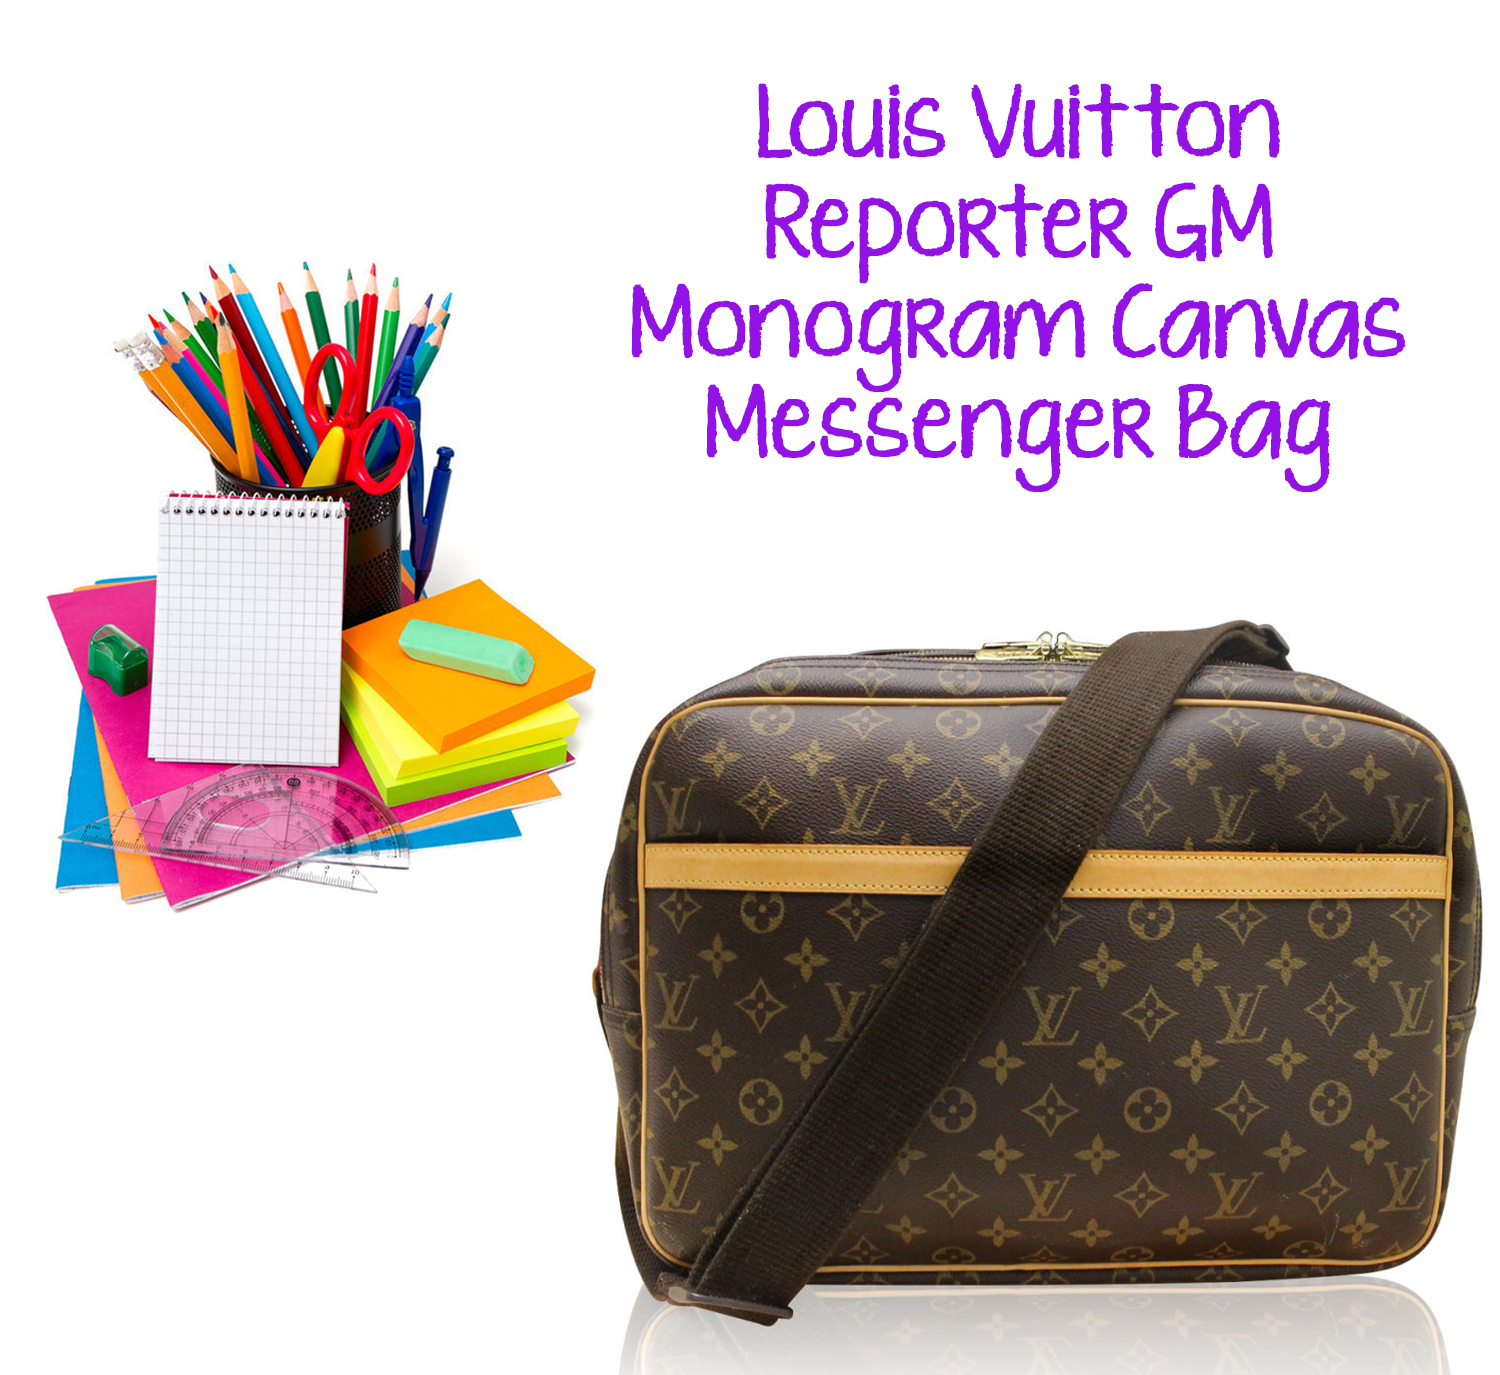 Louis Vuitton Reporter GM Boca Raton